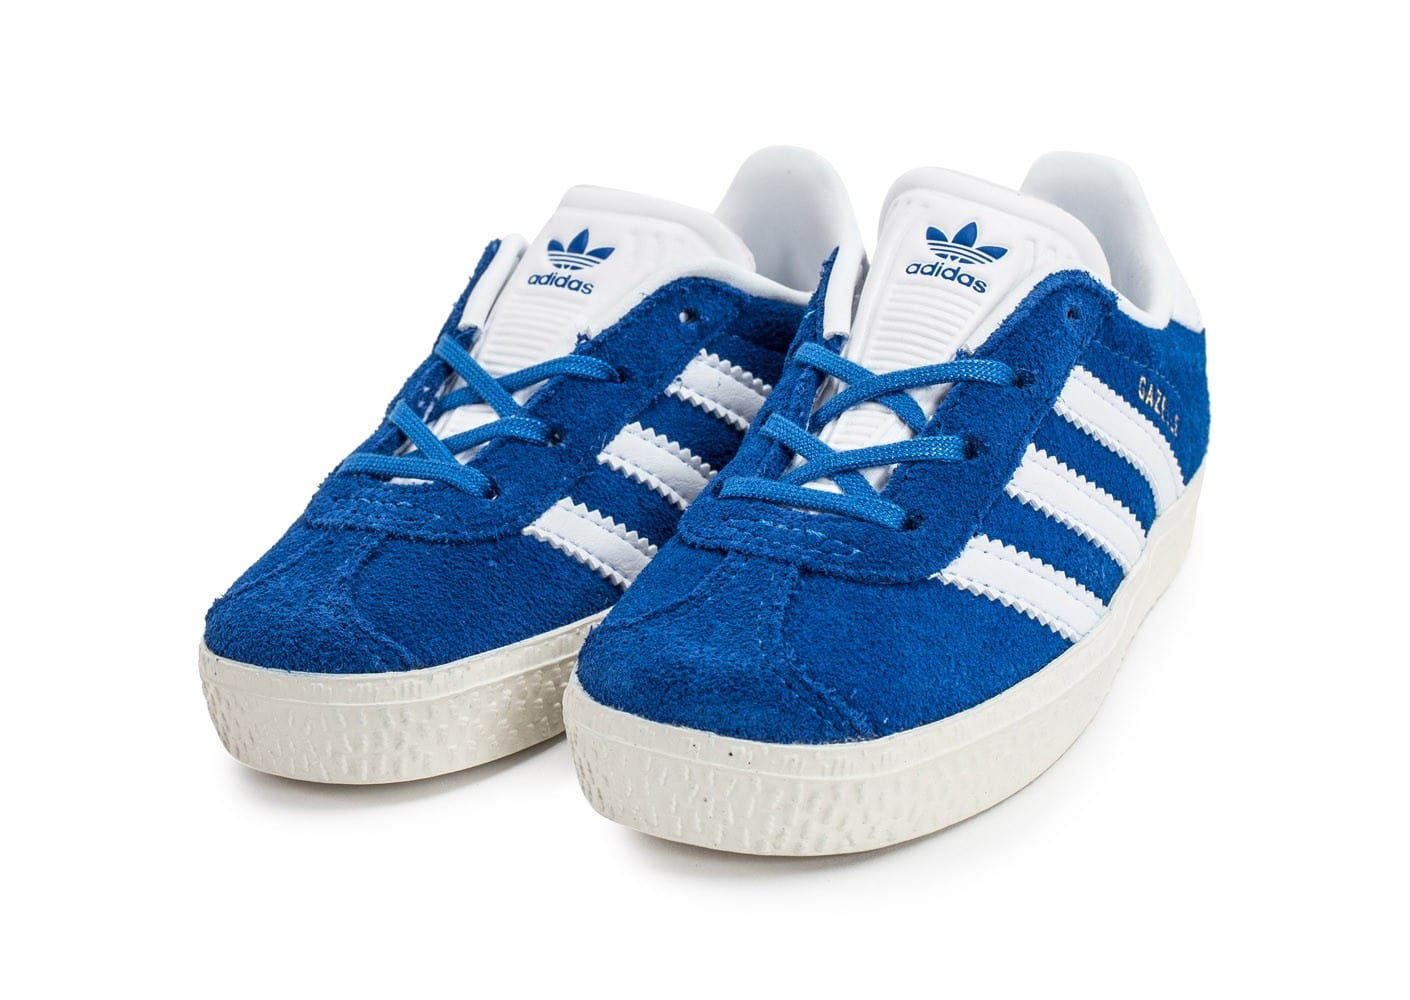 adidas gazelle b b bleue chaussures adidas chausport. Black Bedroom Furniture Sets. Home Design Ideas